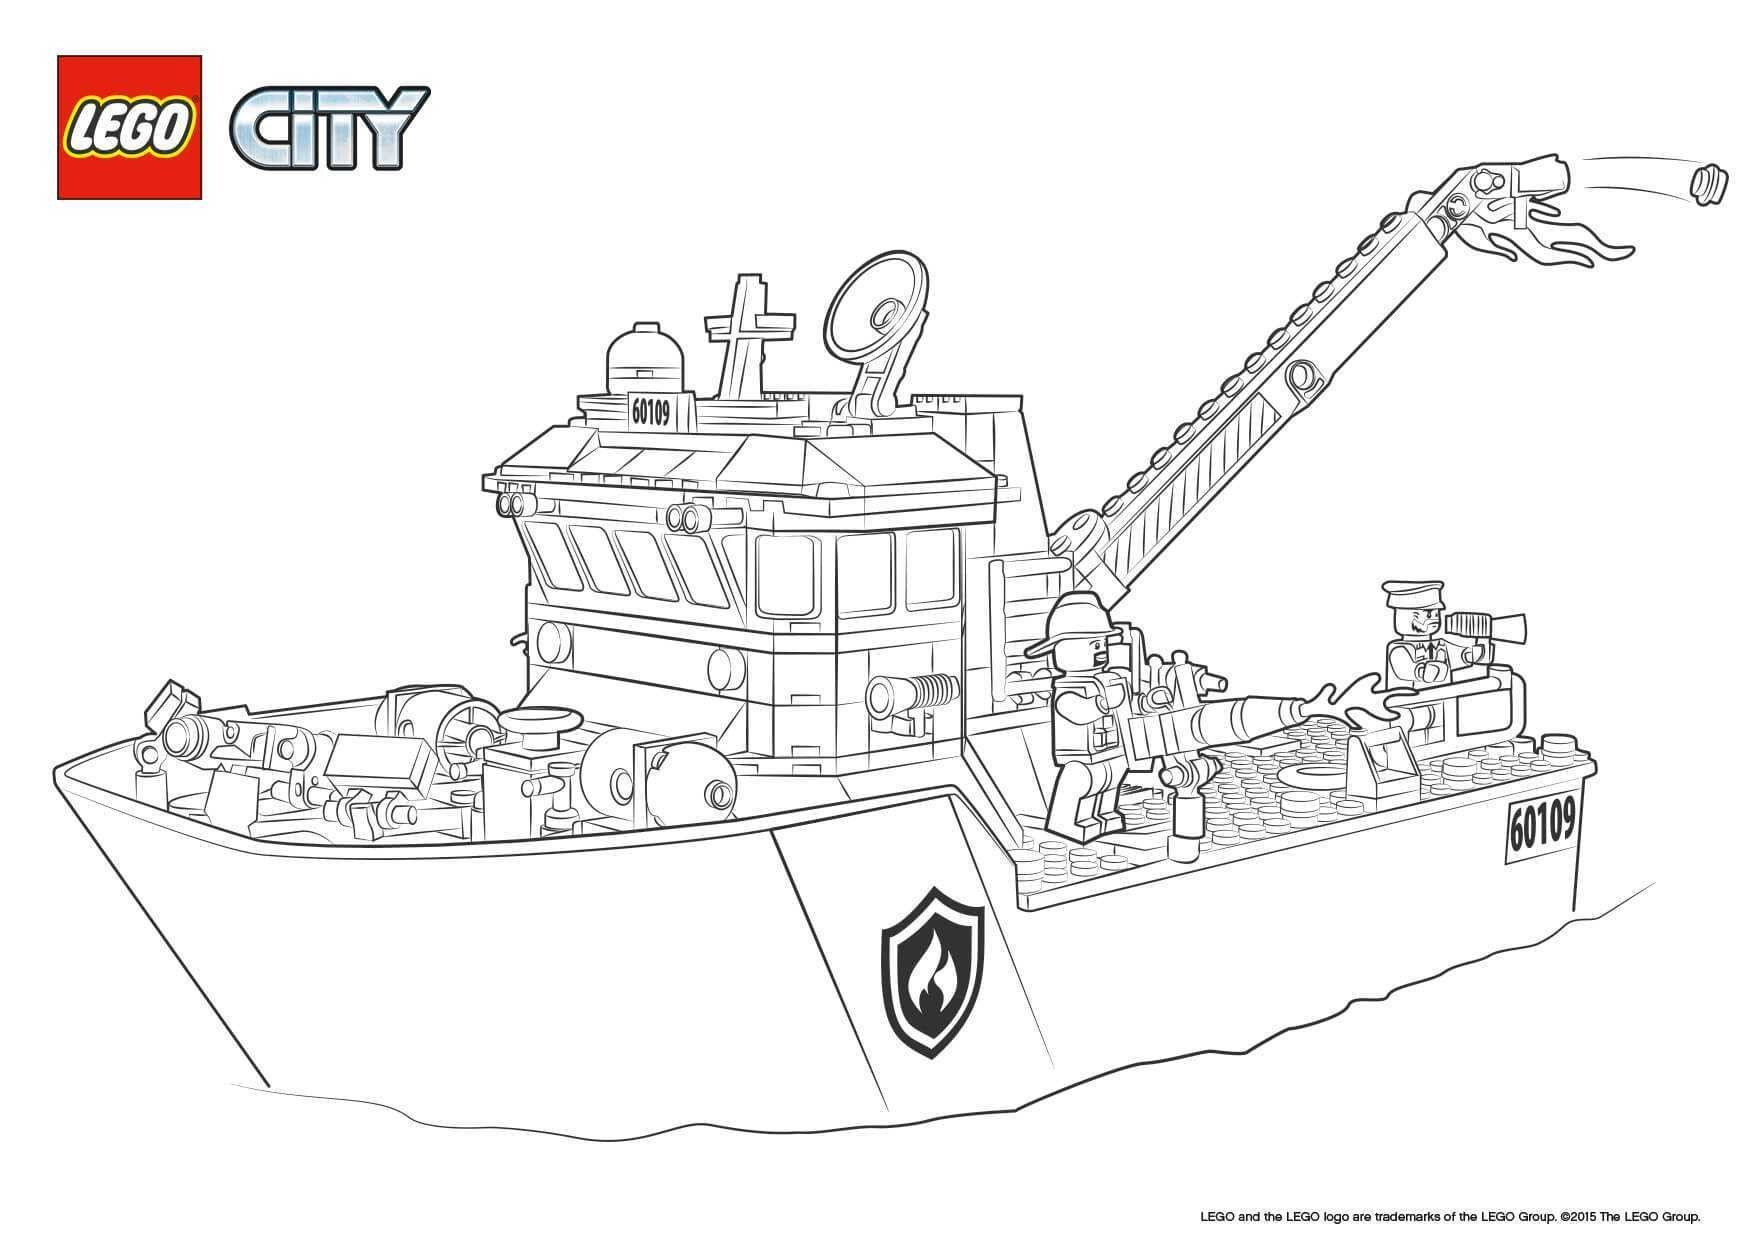 Lego City Coloring Pages Fresh Lego City Coloring Pages Lego City Police Color Printing Lego Coloring Pages Lego Coloring Mermaid Coloring Pages